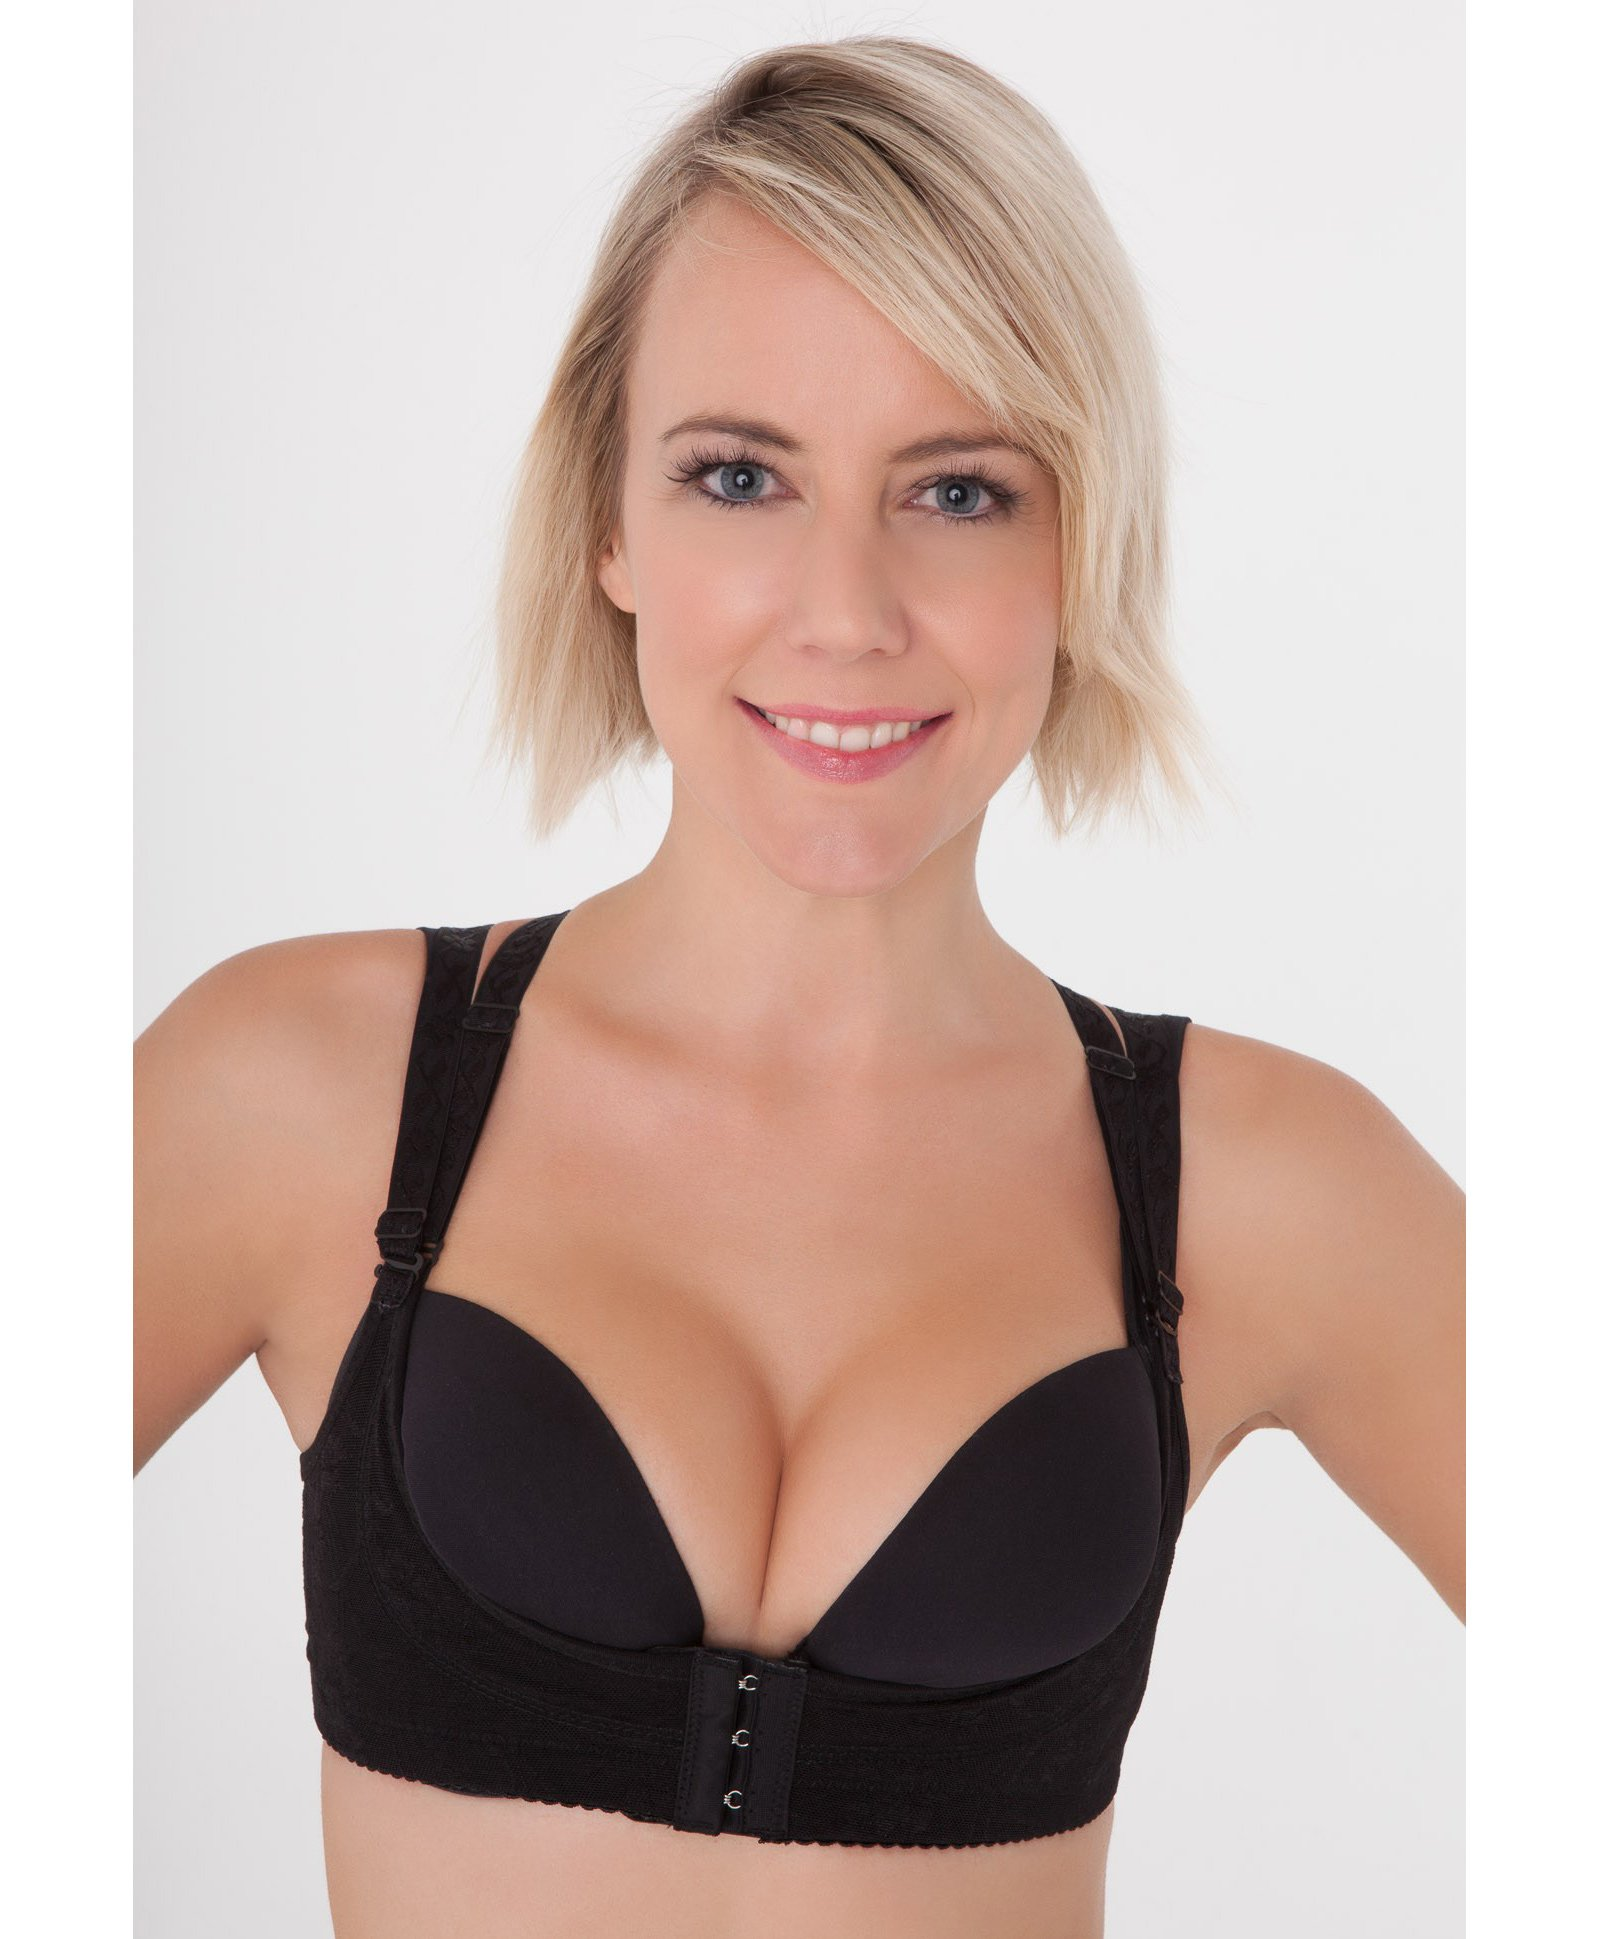 d6a9dc9ac3a36 Aaram Breast Reshaper Push Up Bra Black Online in India, Buy at ...